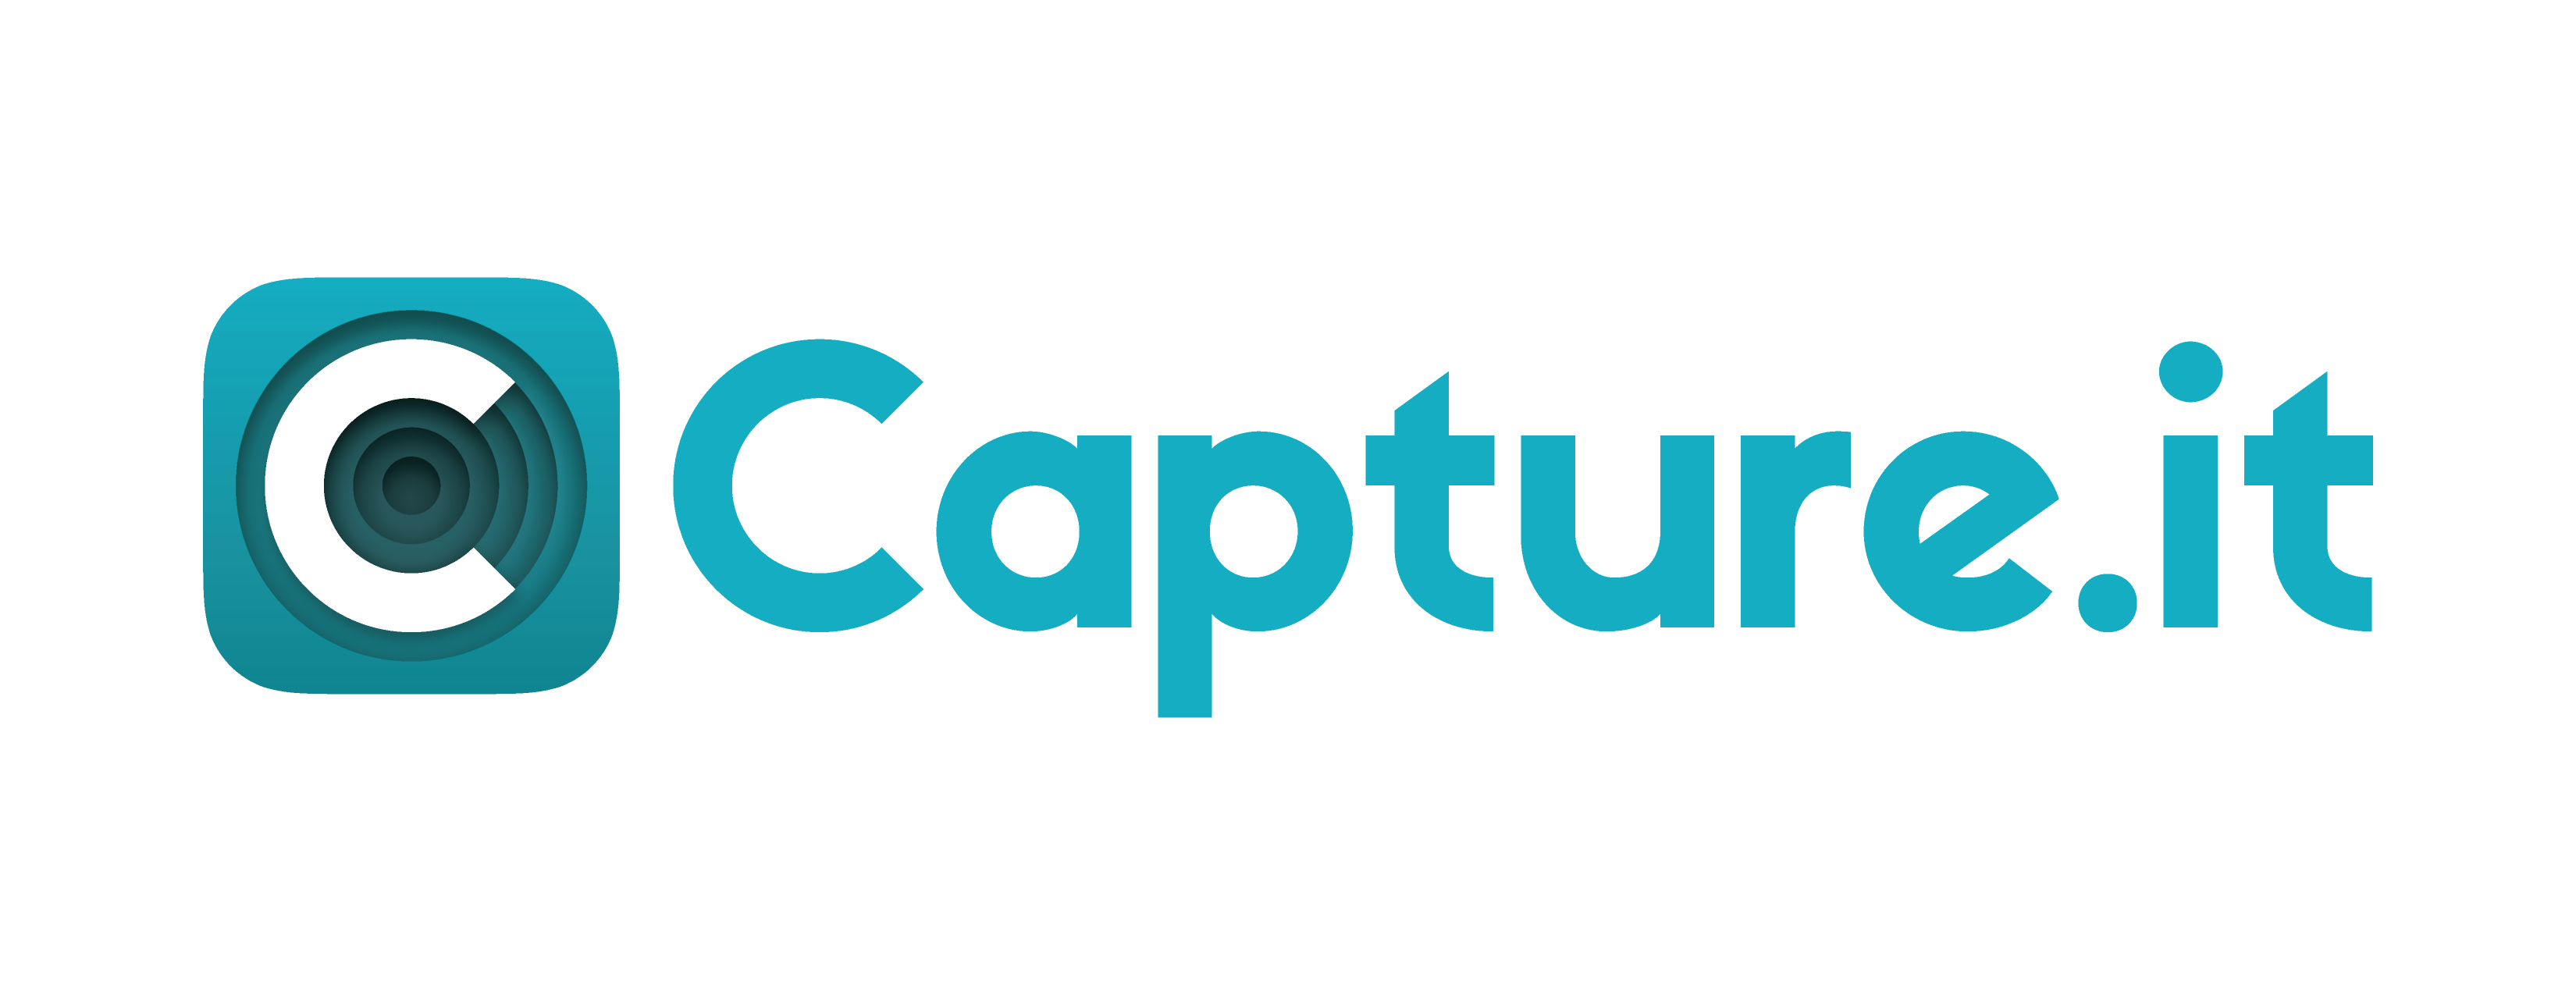 Capture.It Help Center home page